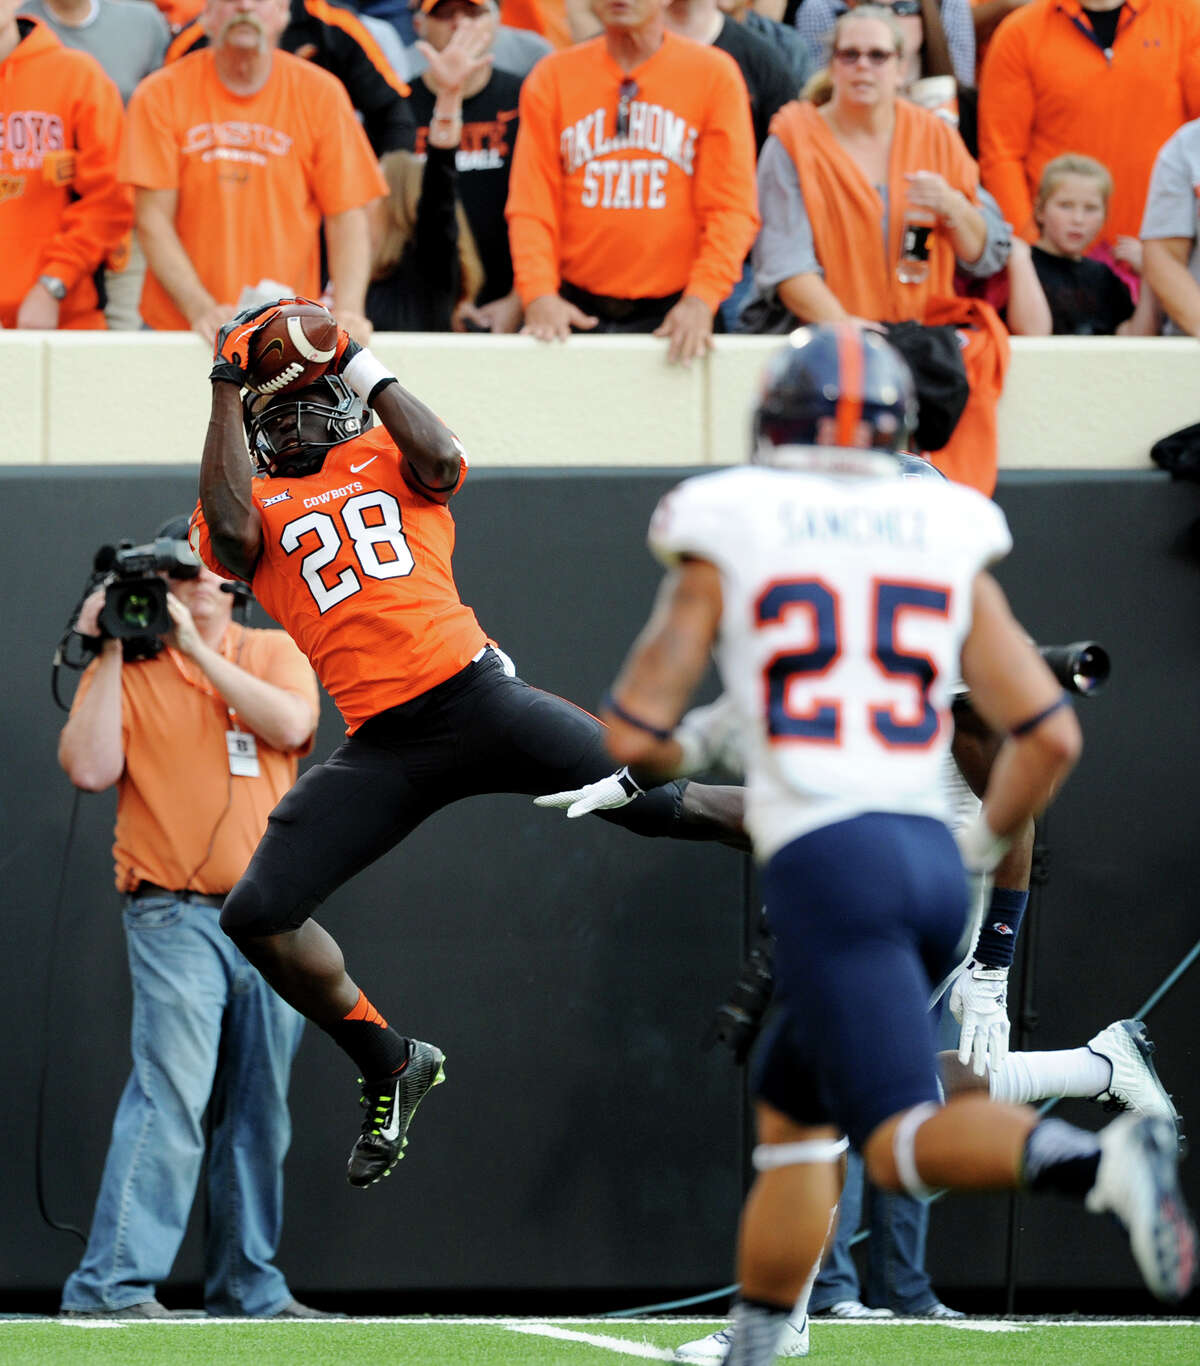 UTSA safety Mauricio Sanchez (25) races toward Oklahoma State wide receiver James Washington (28) as he catches a touchdown pass from quarterback Daxx Garman during the first half of an NCAA college football game in Stillwater, Okla. Saturday, Sept. 13, 2014. Oklahoma State defeated UTSA 37-13.